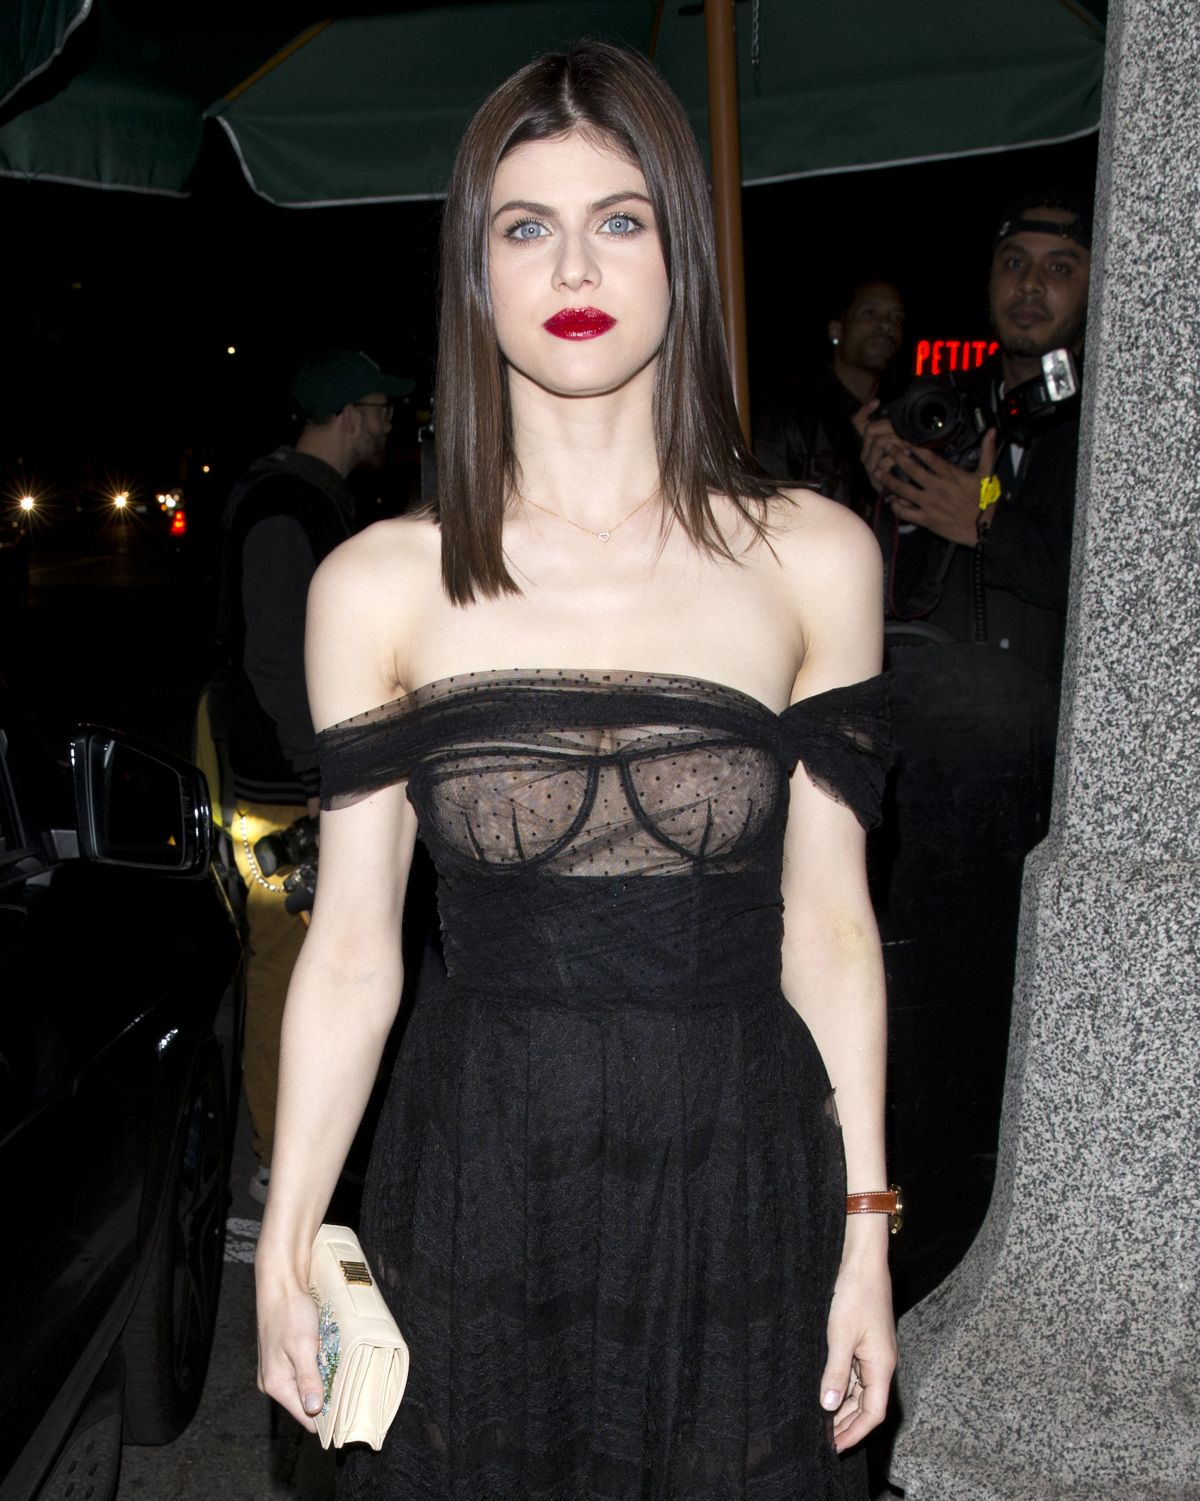 Alexandra Daddario At Dior Addict Lacquer Pump Launch Party In West Hollywood 03 14